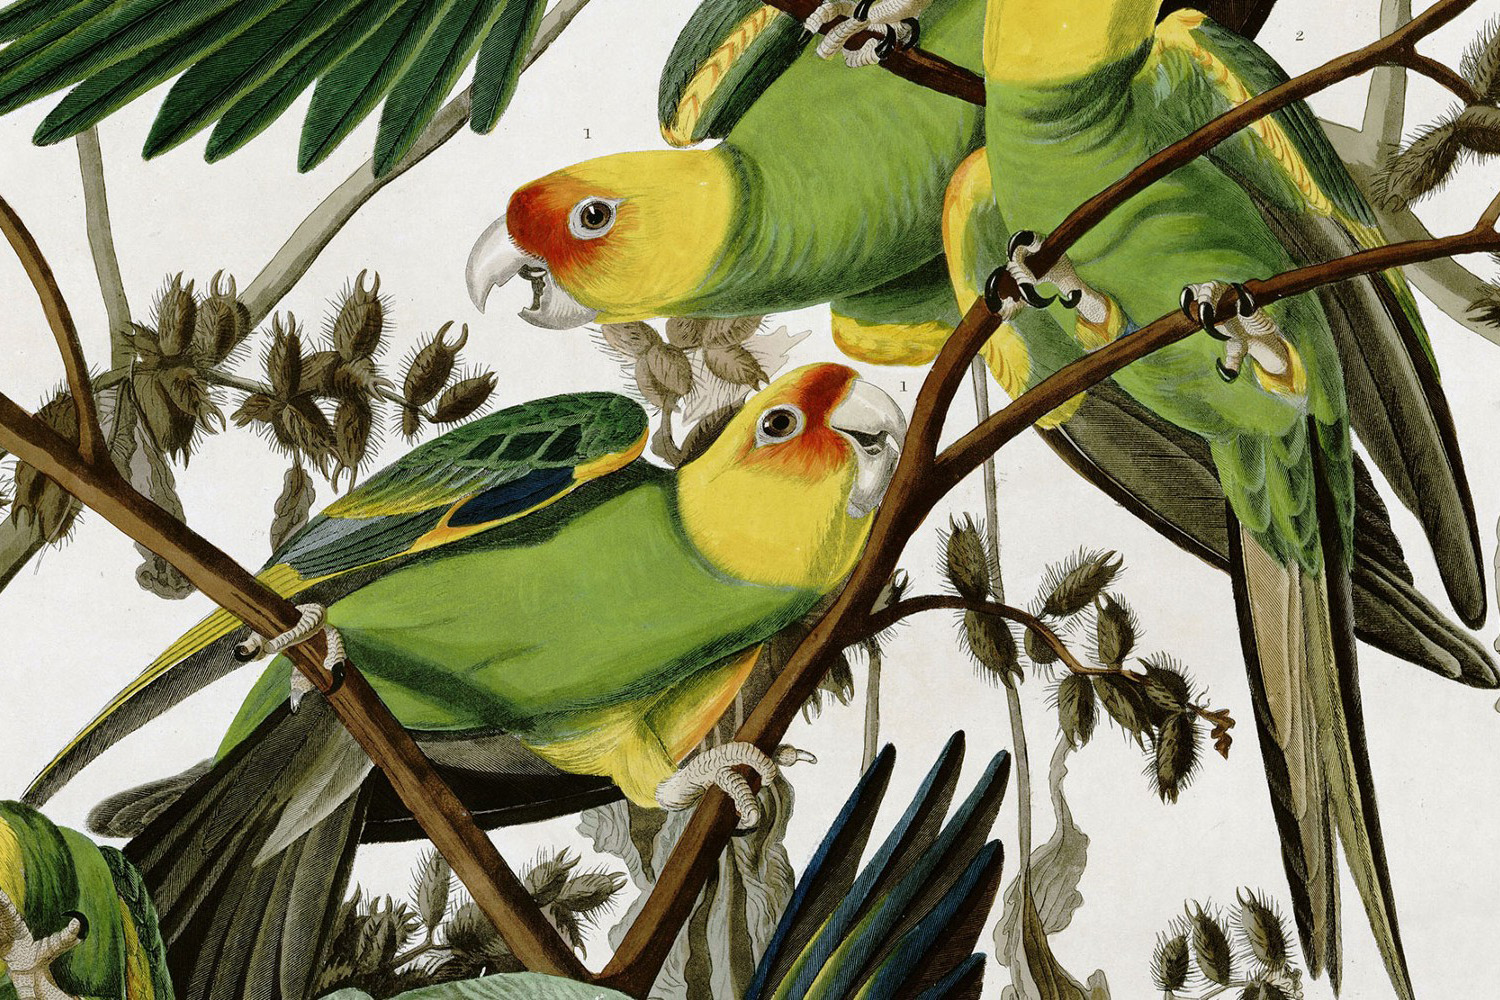 The last recorded Carolina parakeet (Conuropsis carolinensis) died nearly 100 years ago. (Wikimedia Commons)